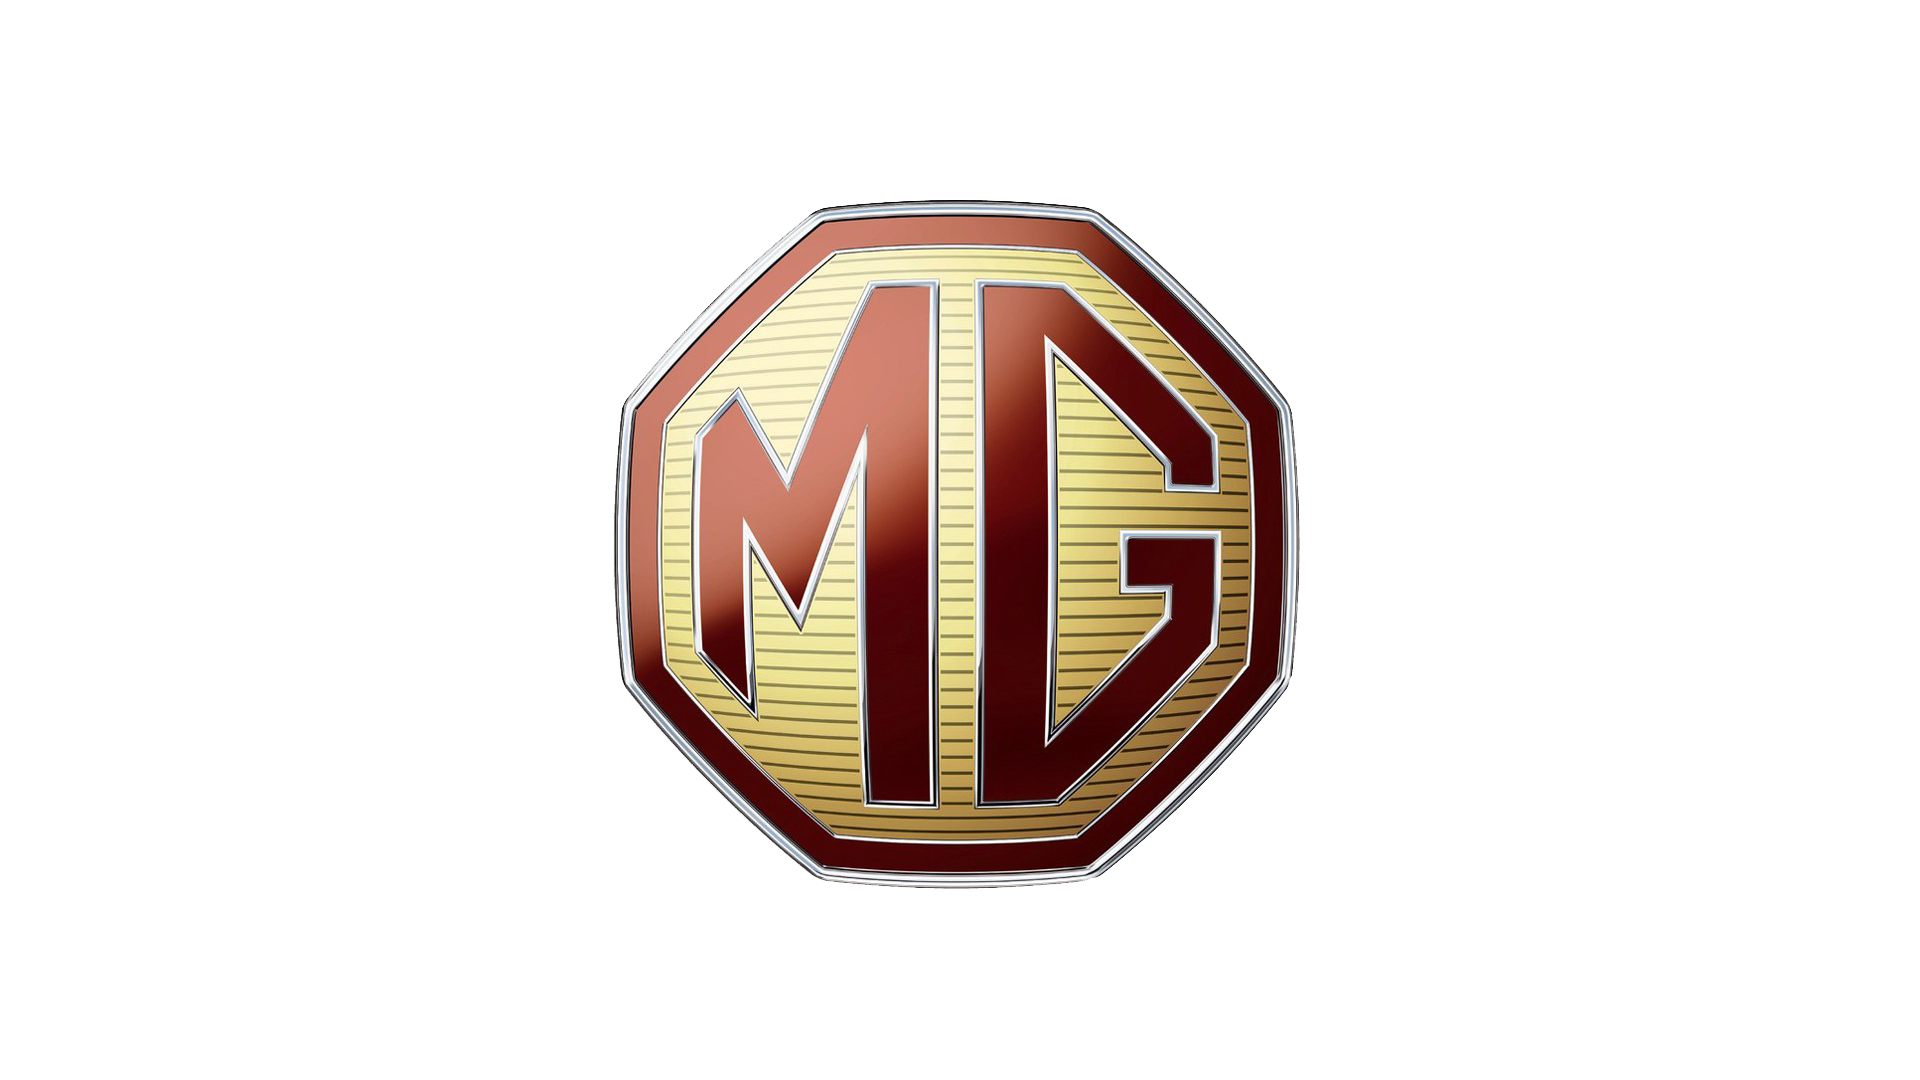 MG Logo, HD Png, Meaning, Information.